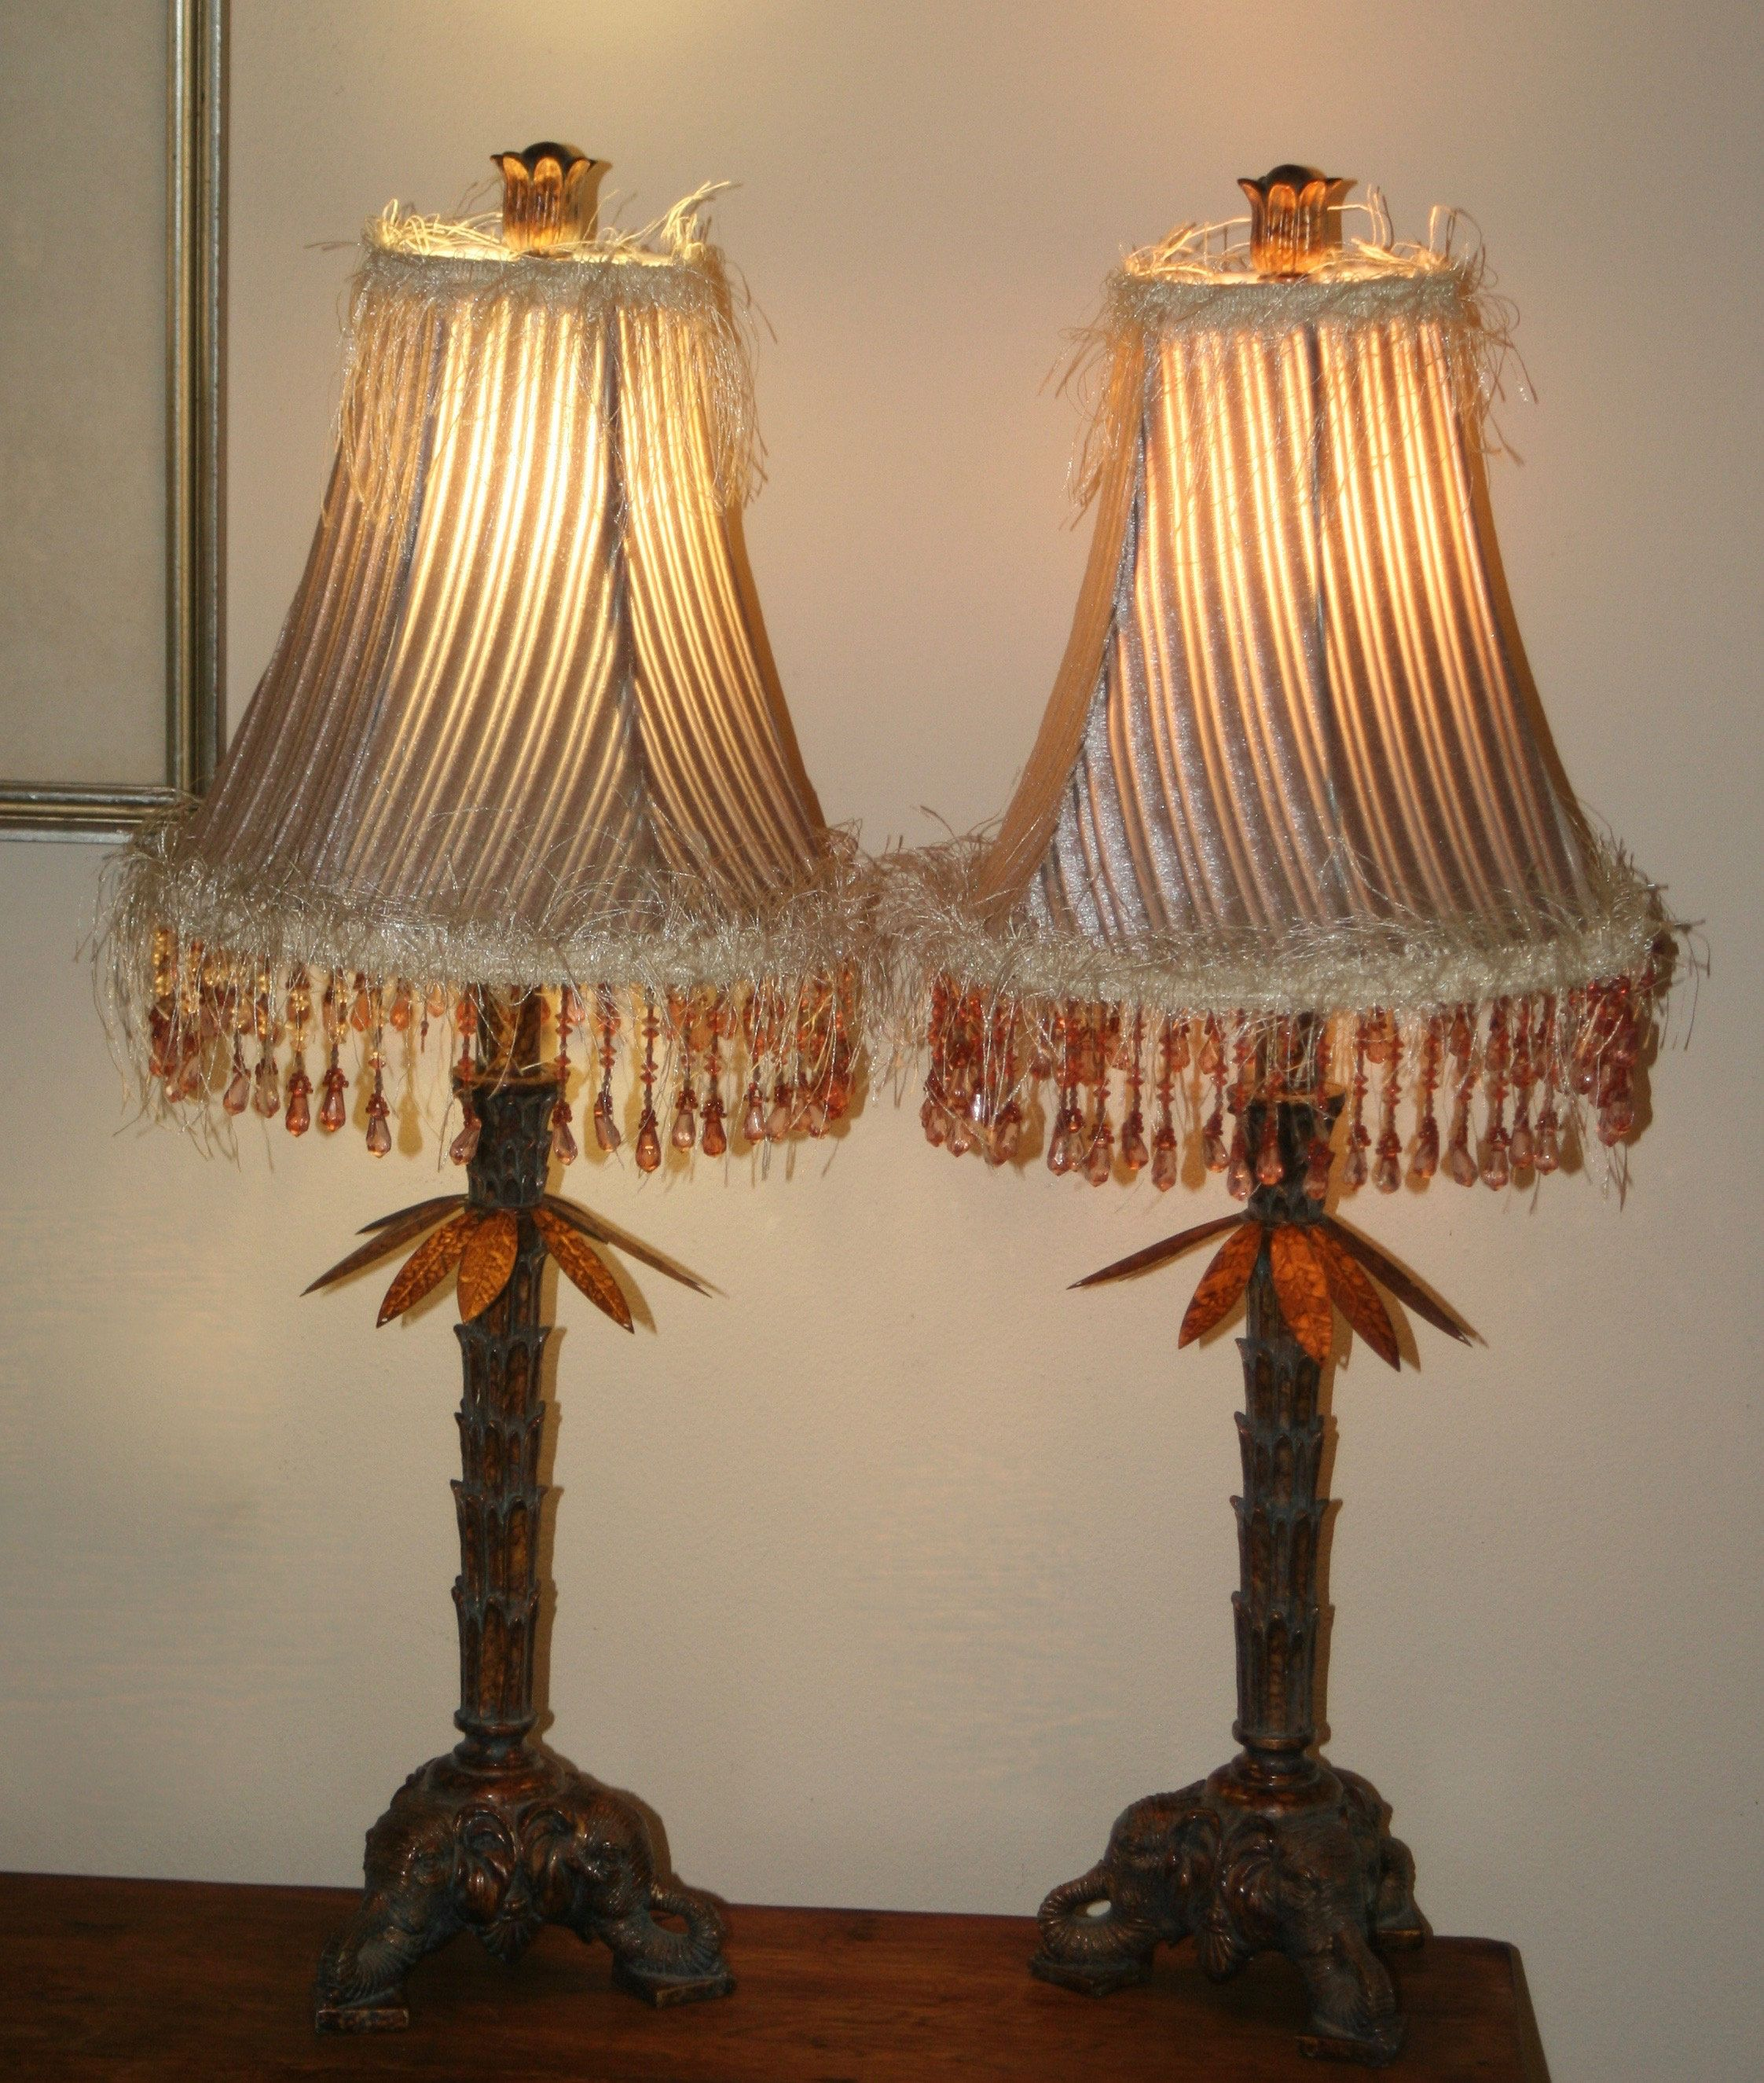 Lovely Pair Of Palm Table Lamps With Elephant Base And Amber Beaded Shades By Theoldgreengarage On Etsy Lamp Table Lamp Lamp Shade